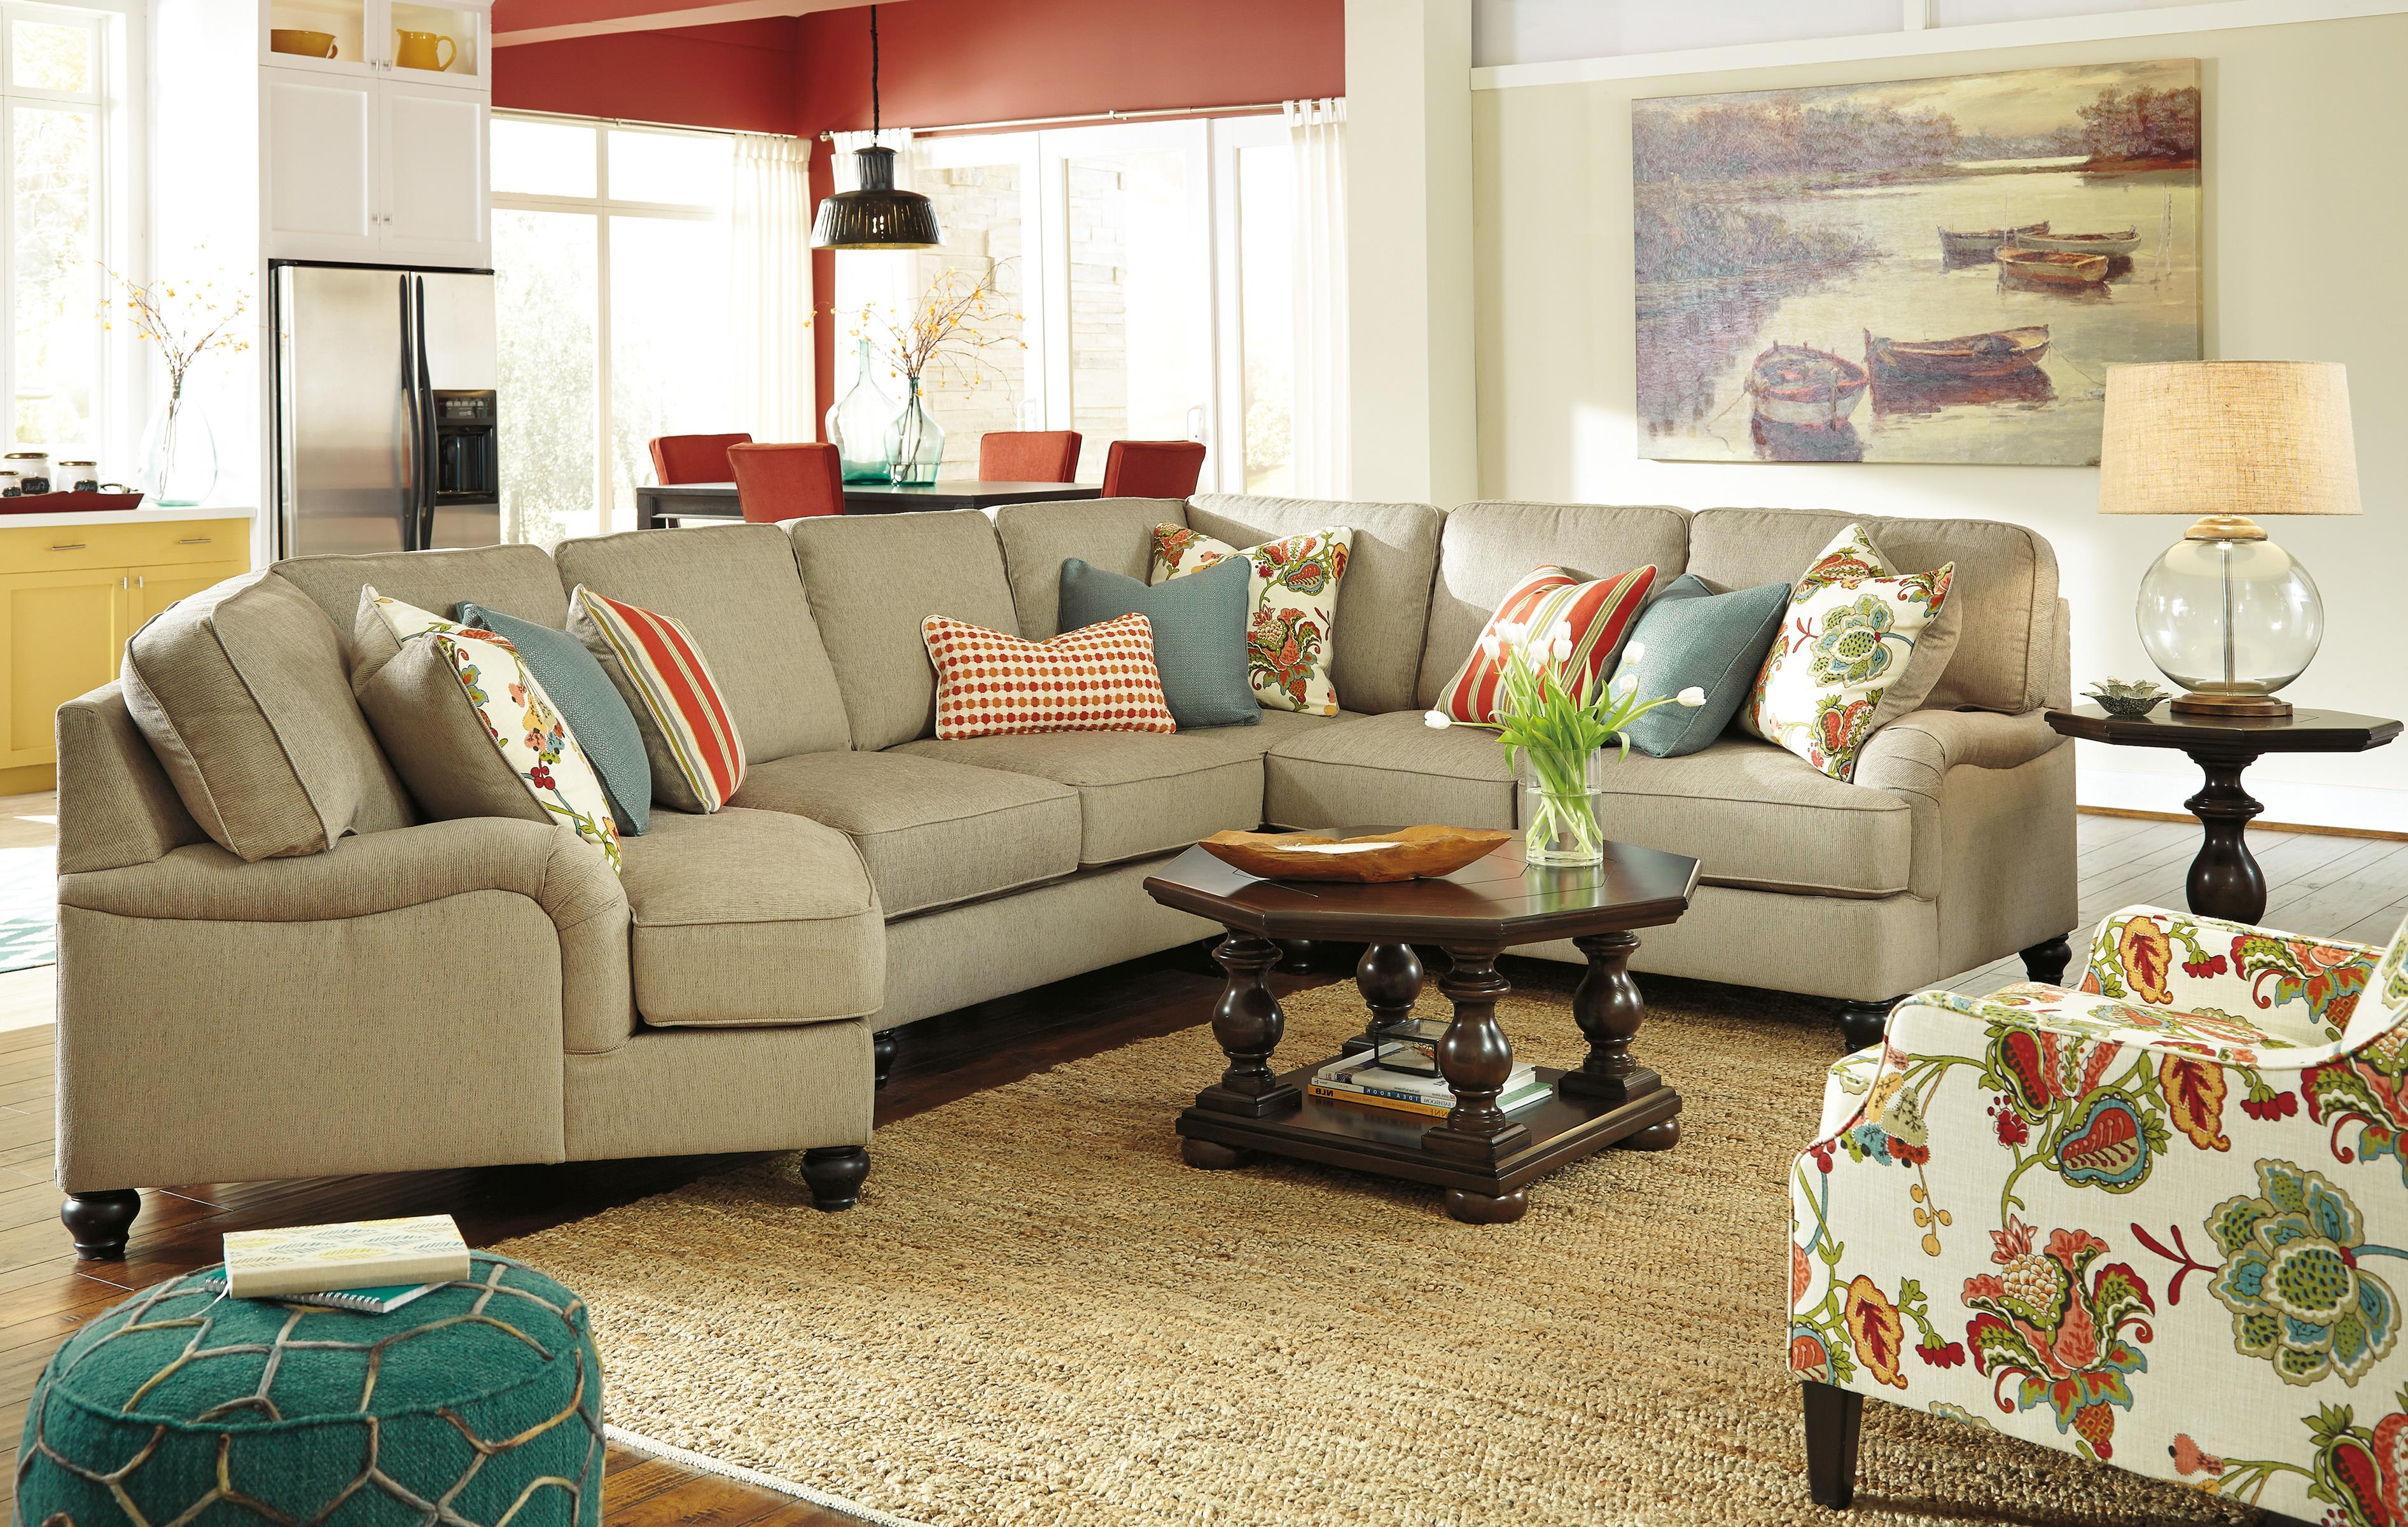 Benchcraft Kerridon Stationary Living Room Group - Item Number: 26300 Living Room Group 11